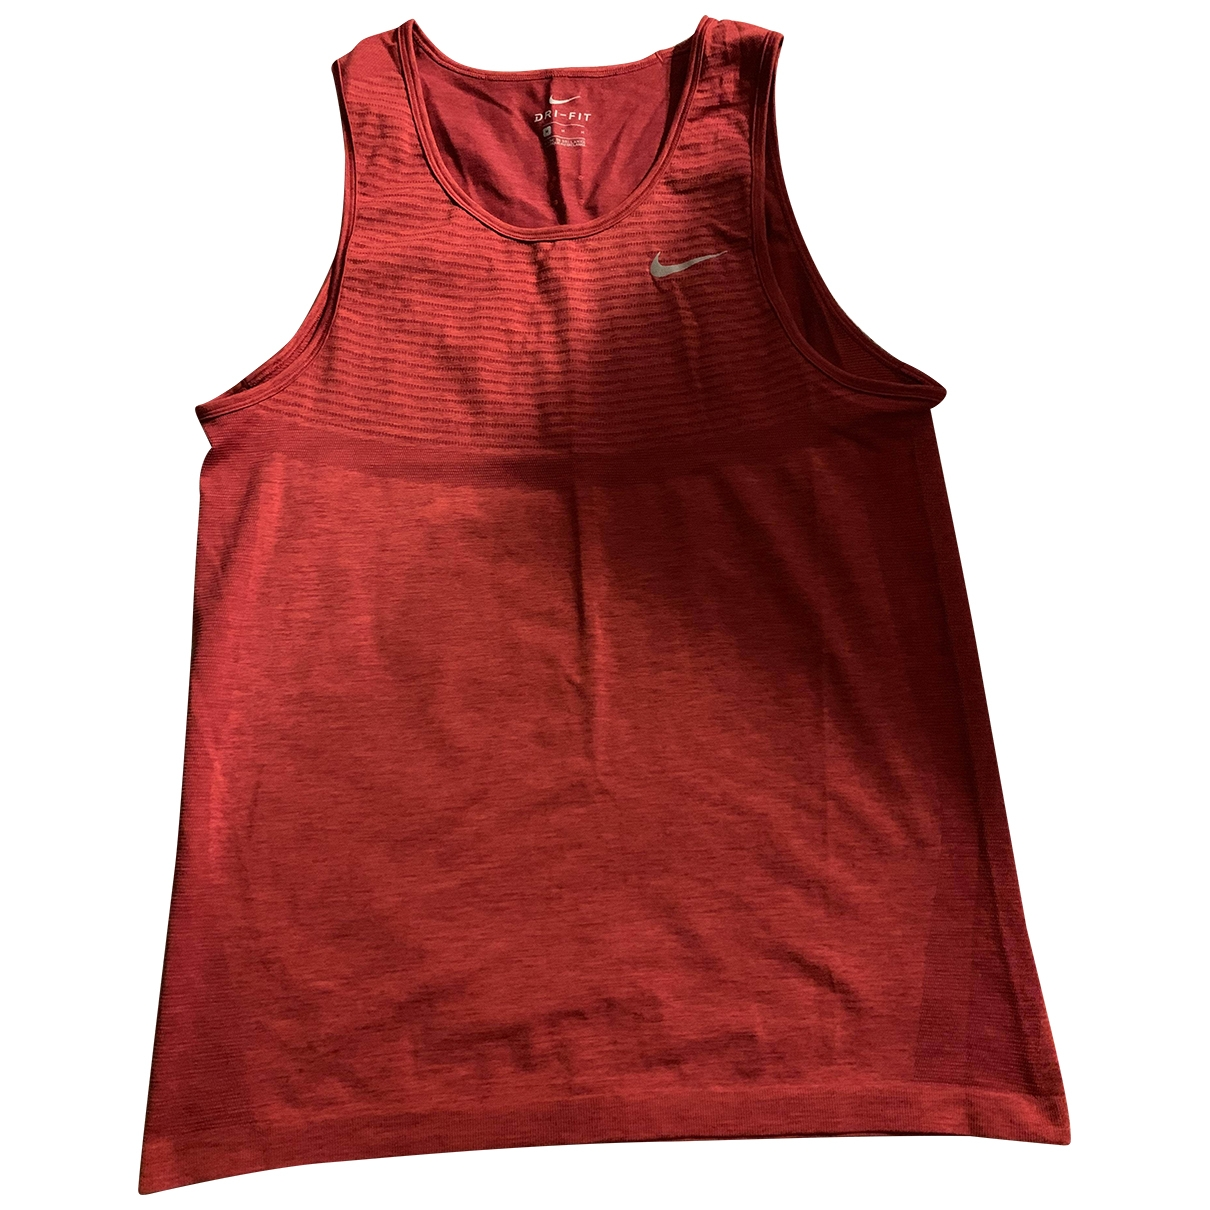 Nike - Tee shirts   pour homme - rouge